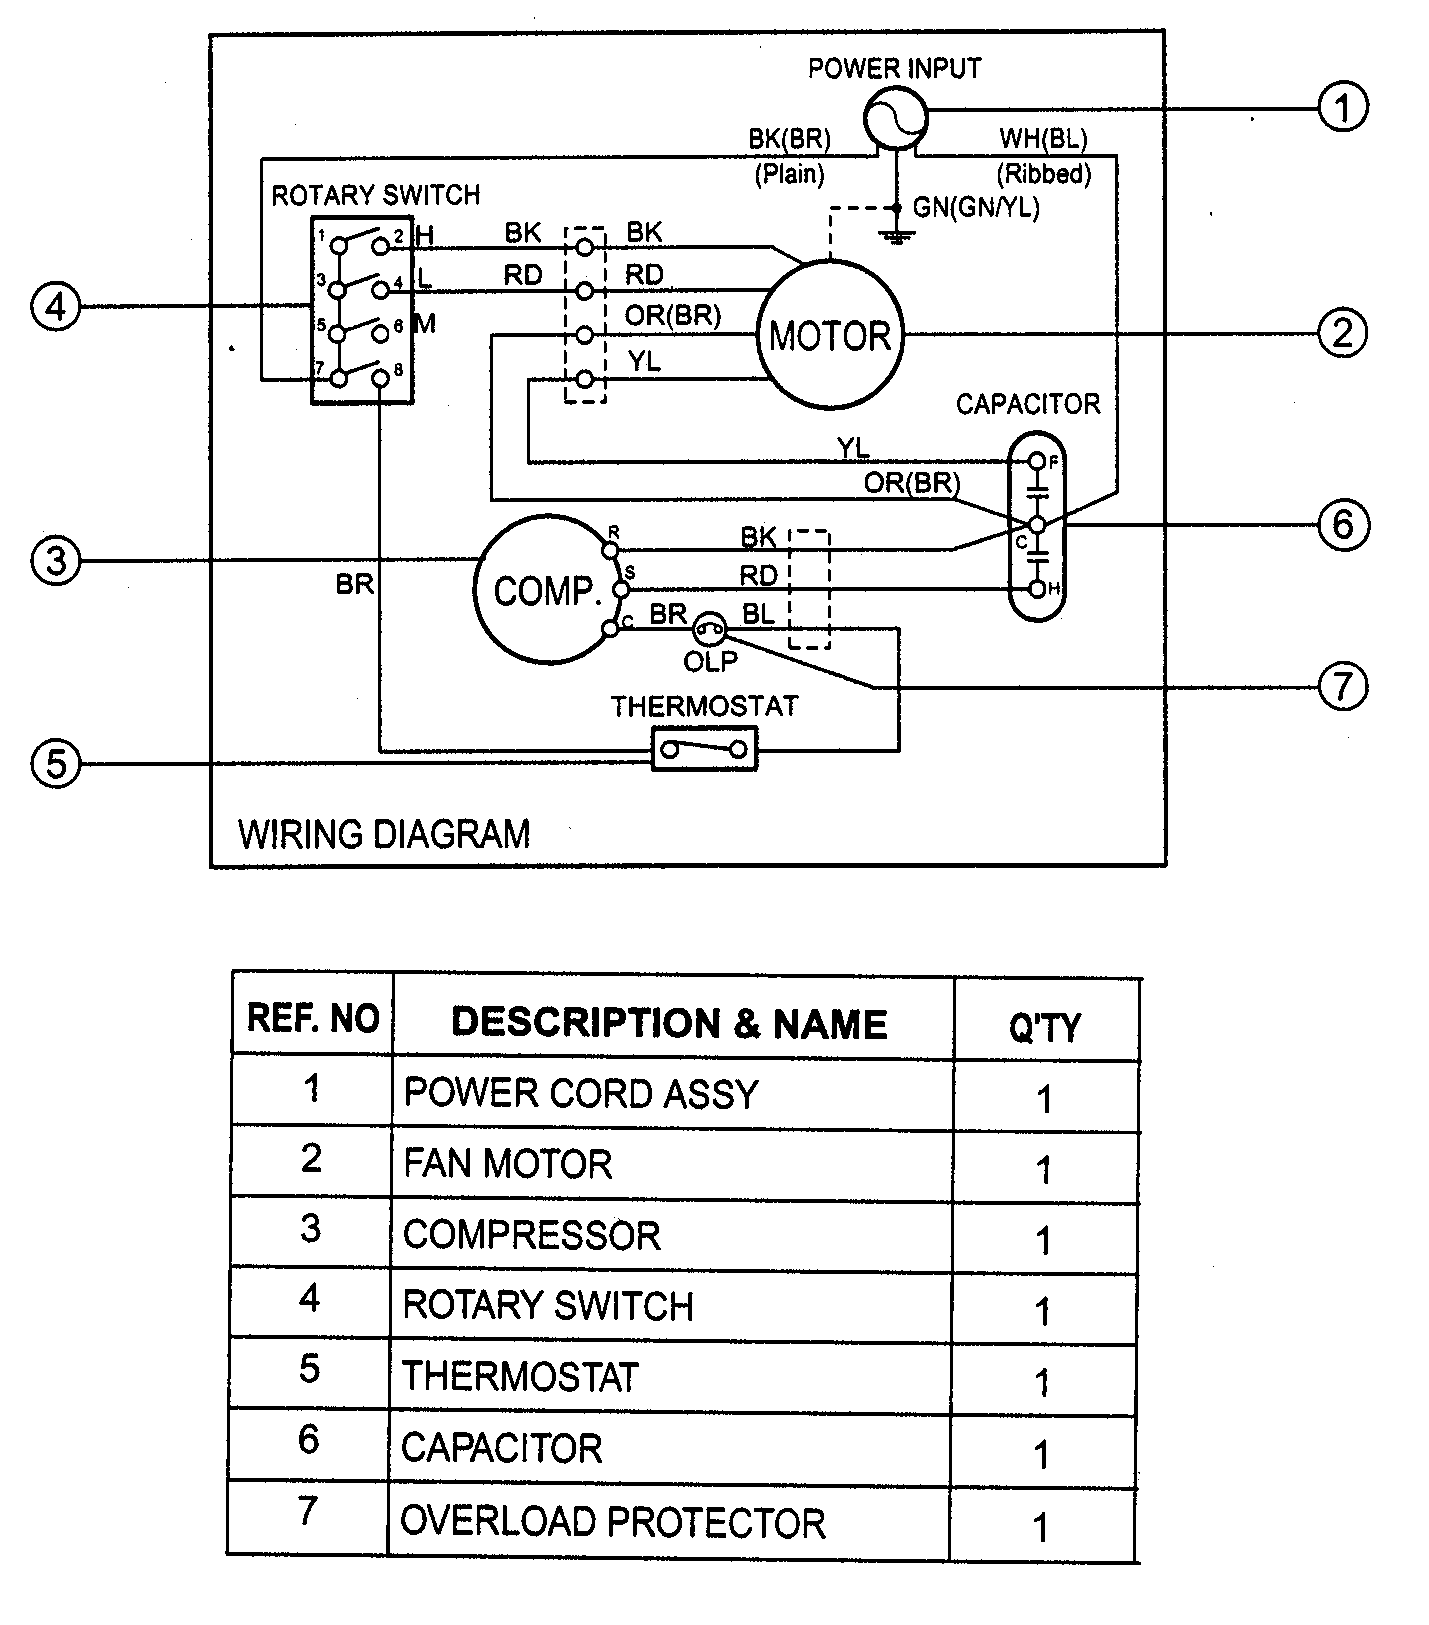 50021807 00002?resize=665%2C756 carrier rv air conditioner wiring diagram wiring diagram  at reclaimingppi.co